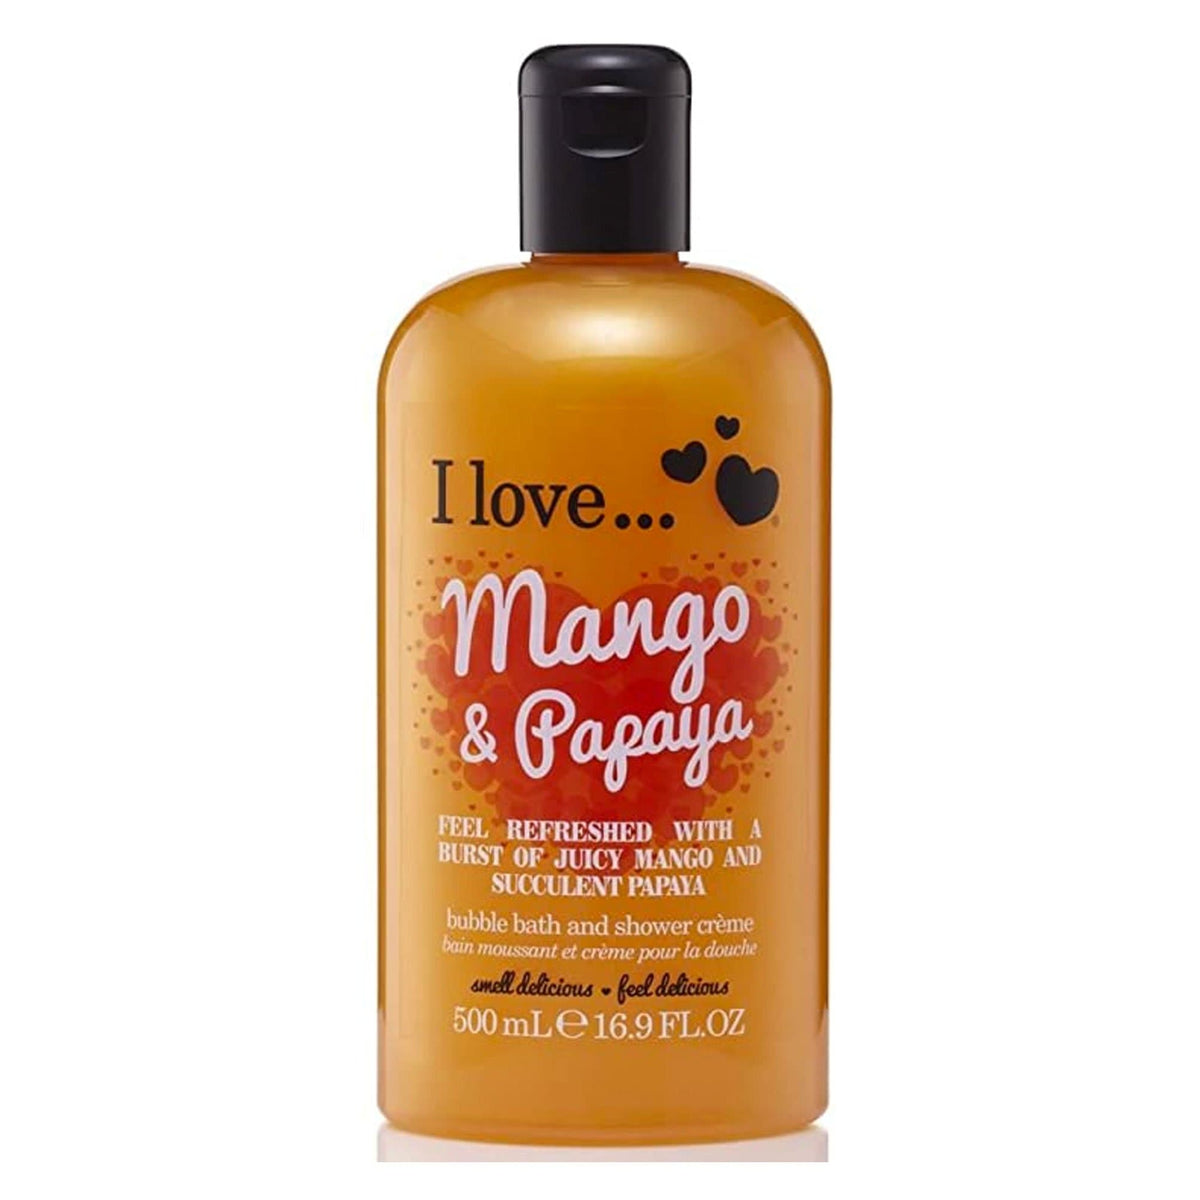 Mango & Papaya bath & shower Crème